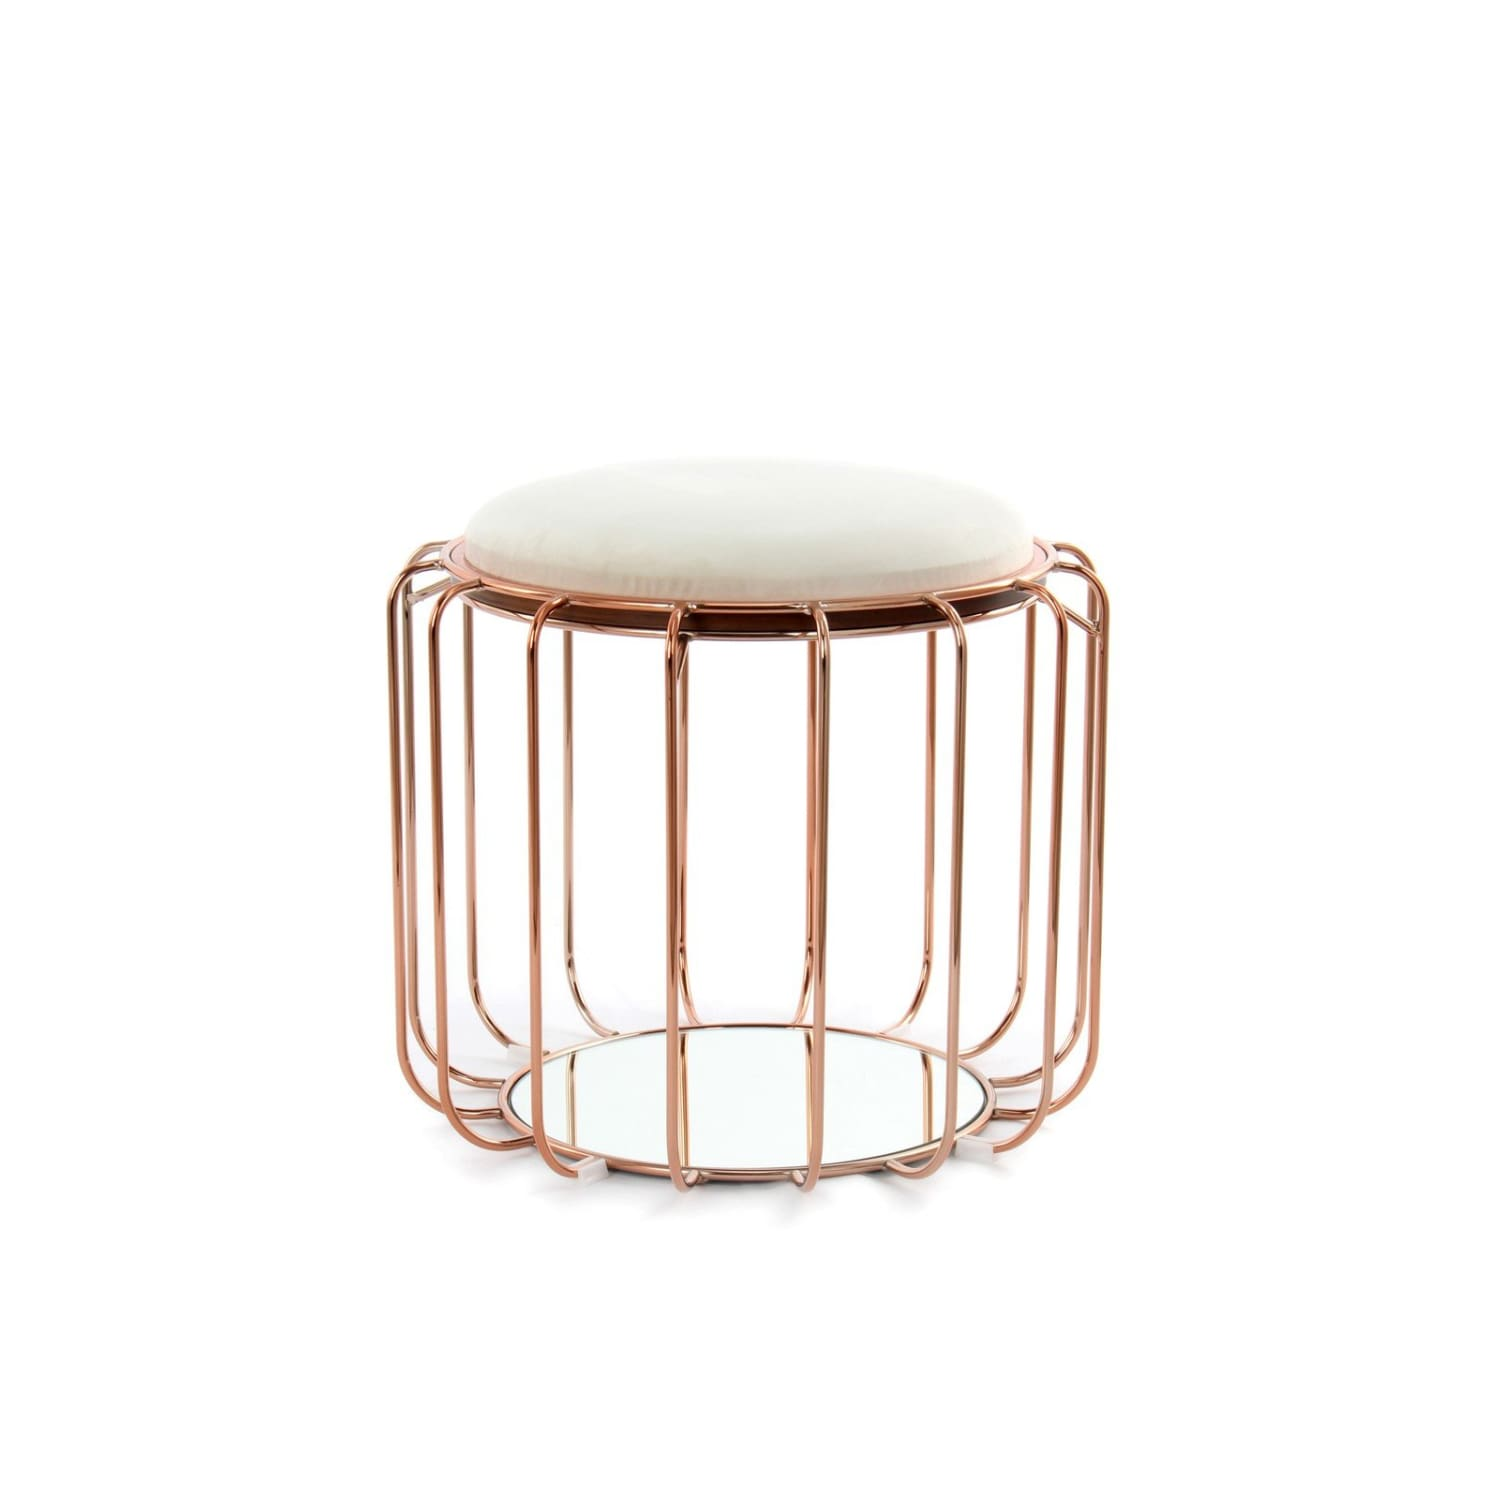 Table d'appoint & Pouf - 2 IN 1 - Comfortable 110 Beige - Rosé